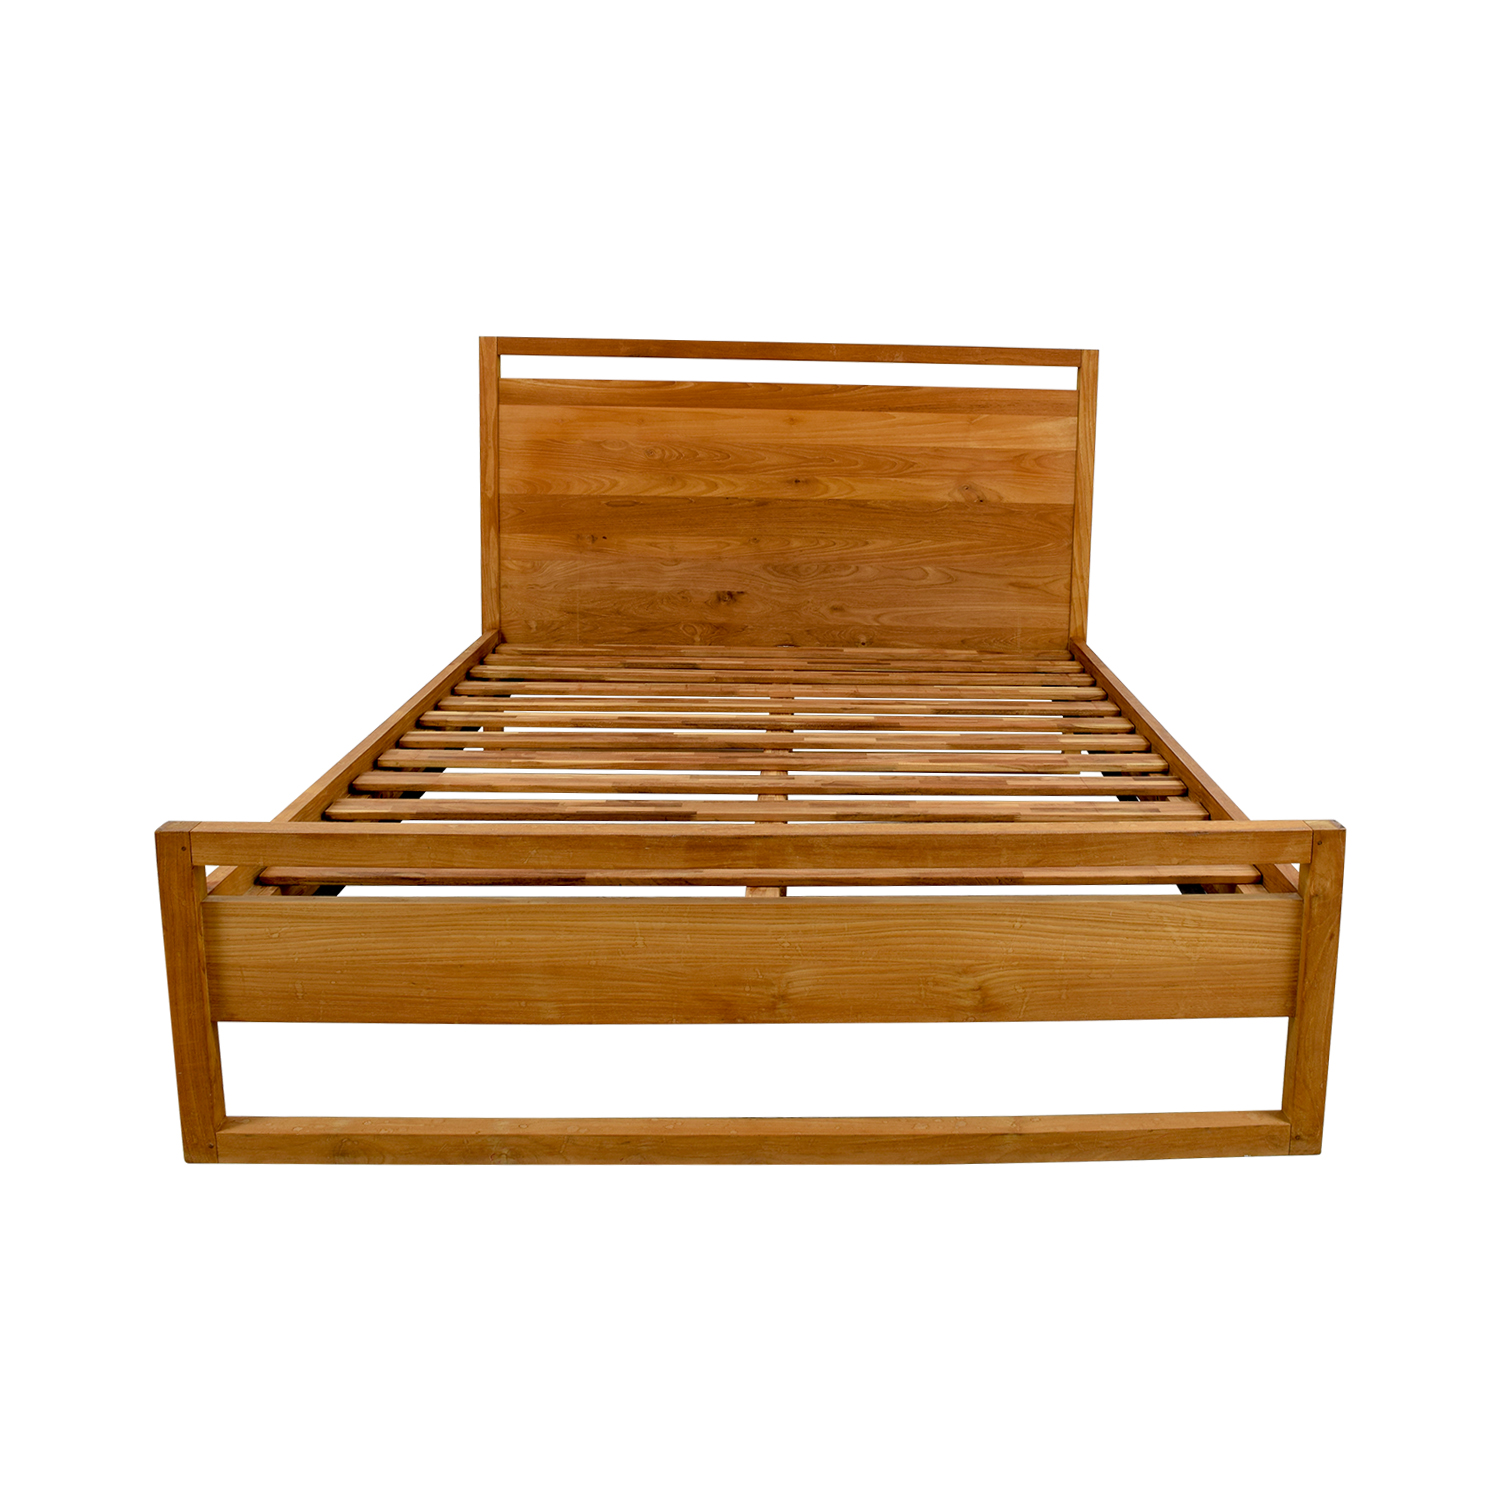 Crate and Barrel Crate and Barrel Linea Platform Queen Bed nj